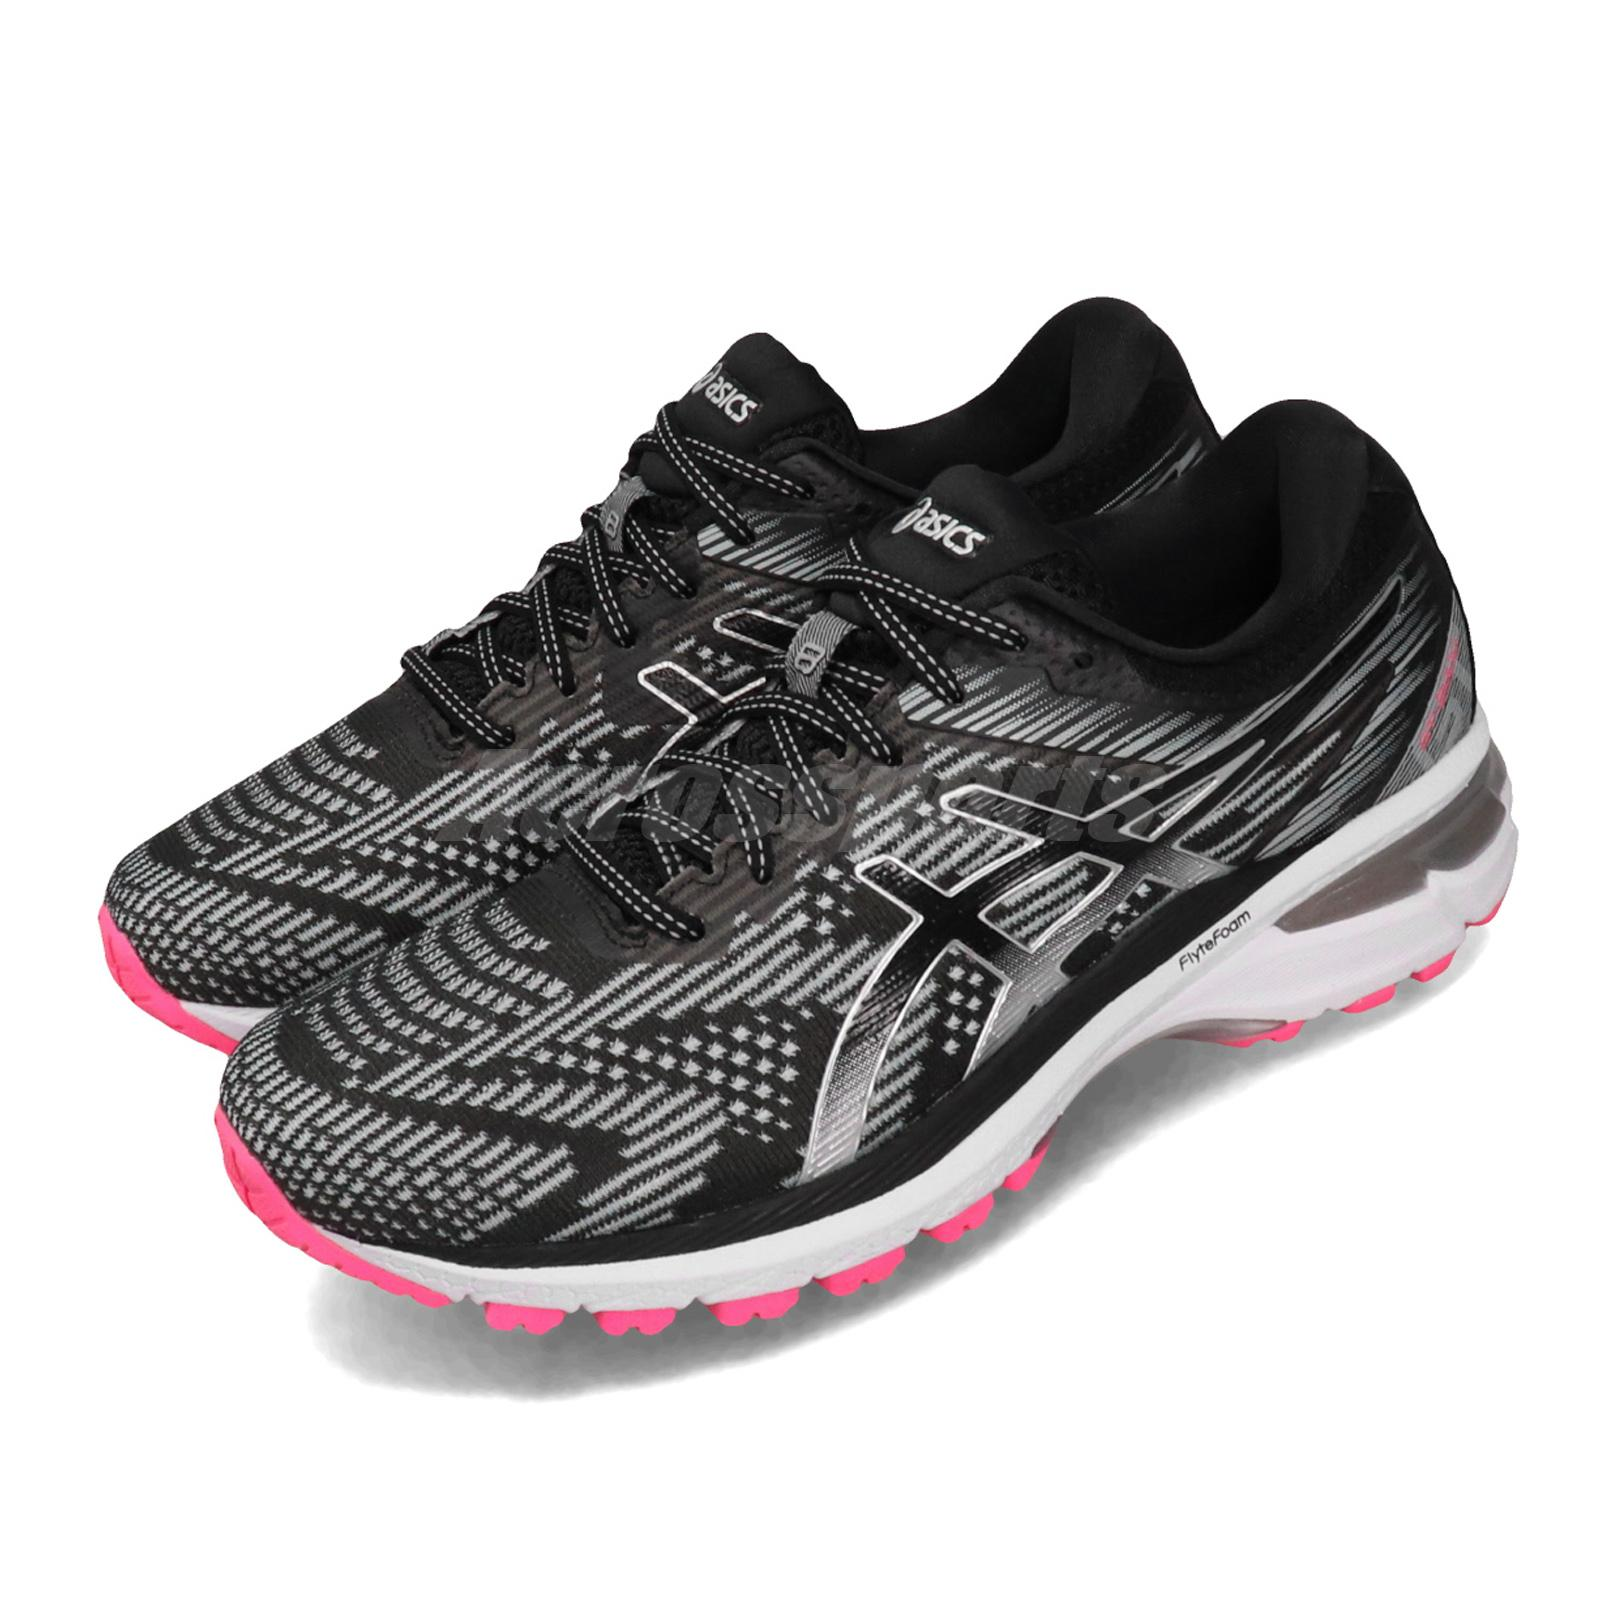 Details about Asics GT-2000 8 Lite-Show Grey Silver White Pink Women  Running Shoe 1012A590-021